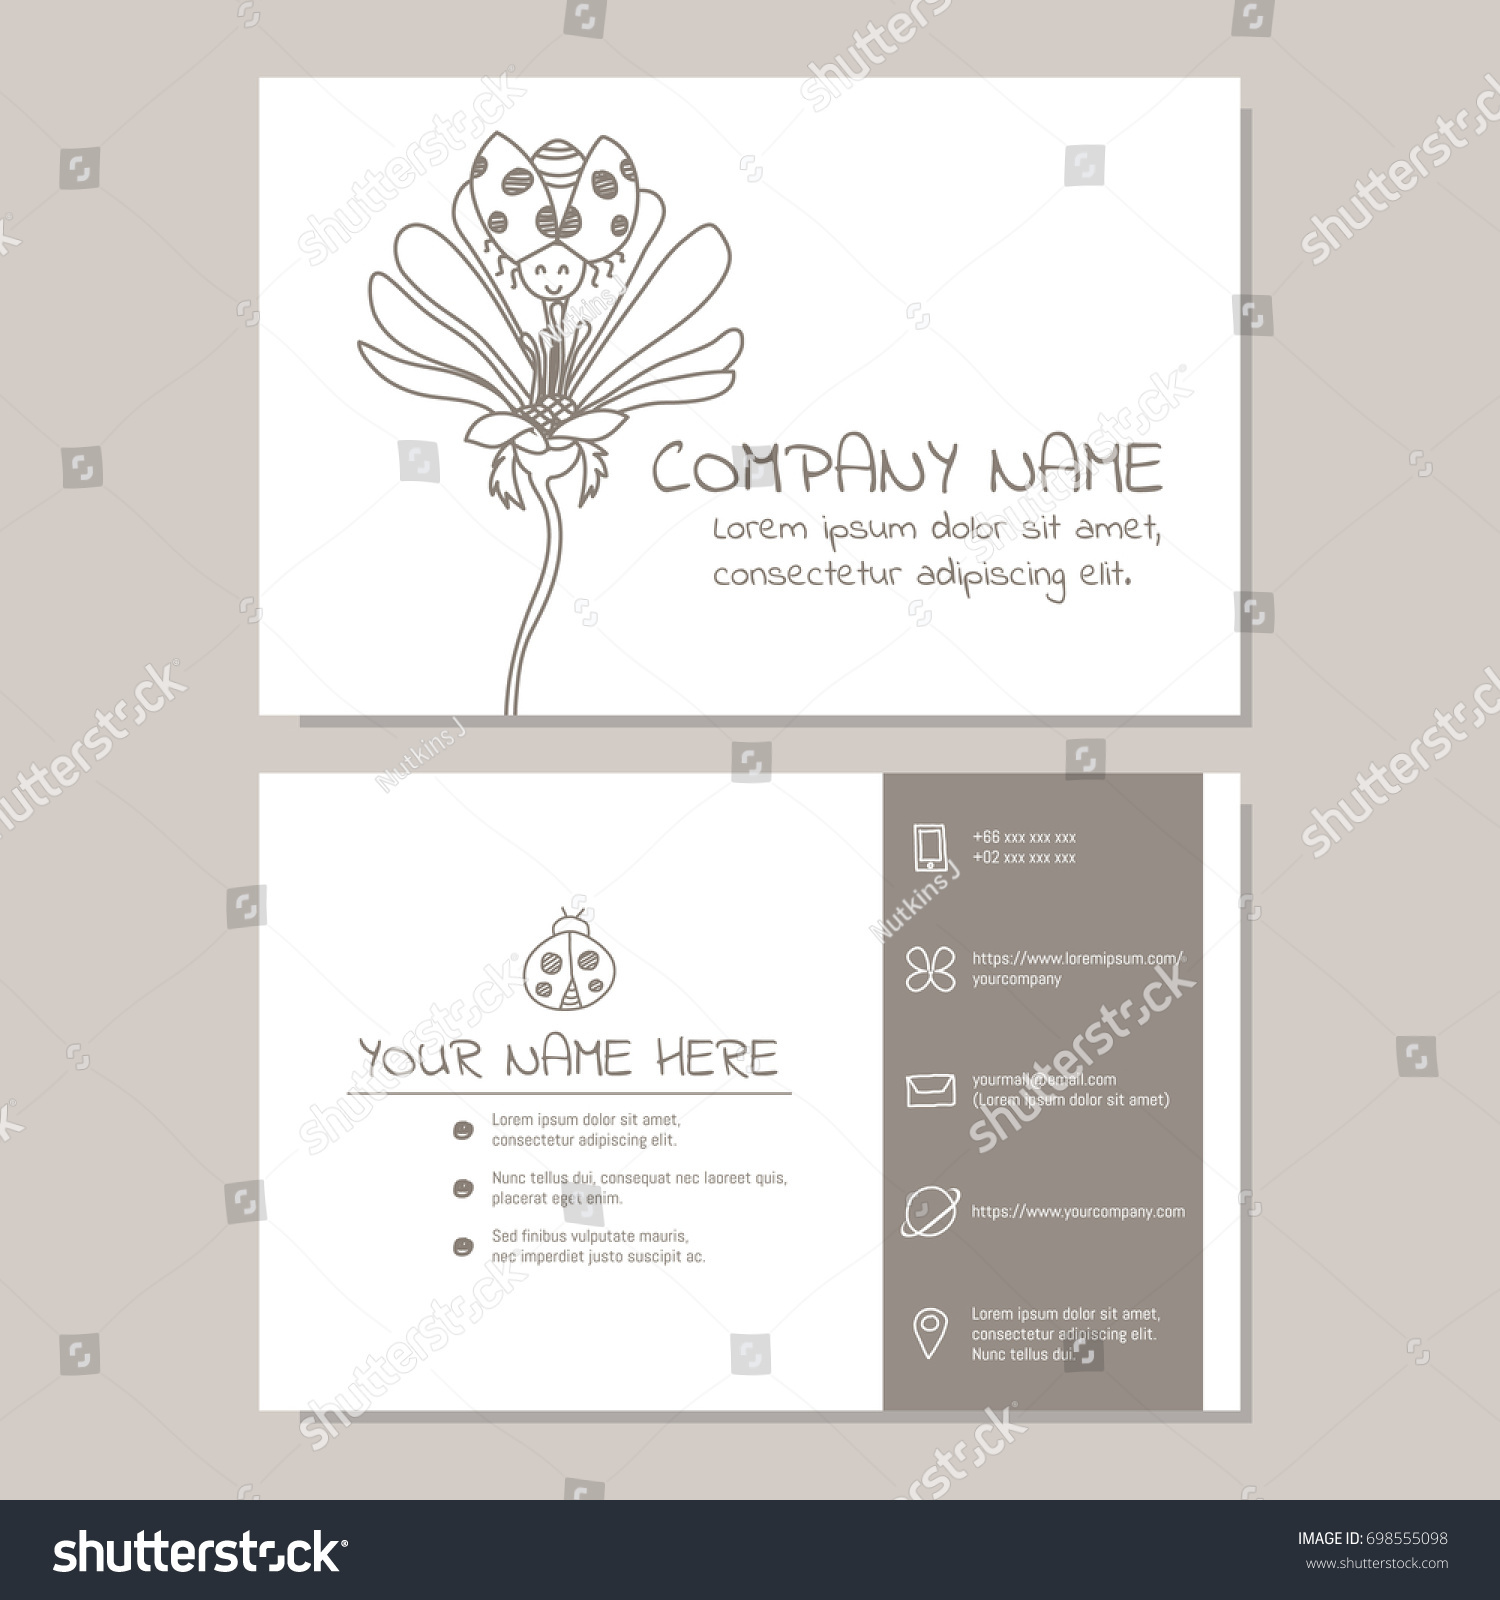 Cute Business Card Vector Illustration Template Stock Vector ...